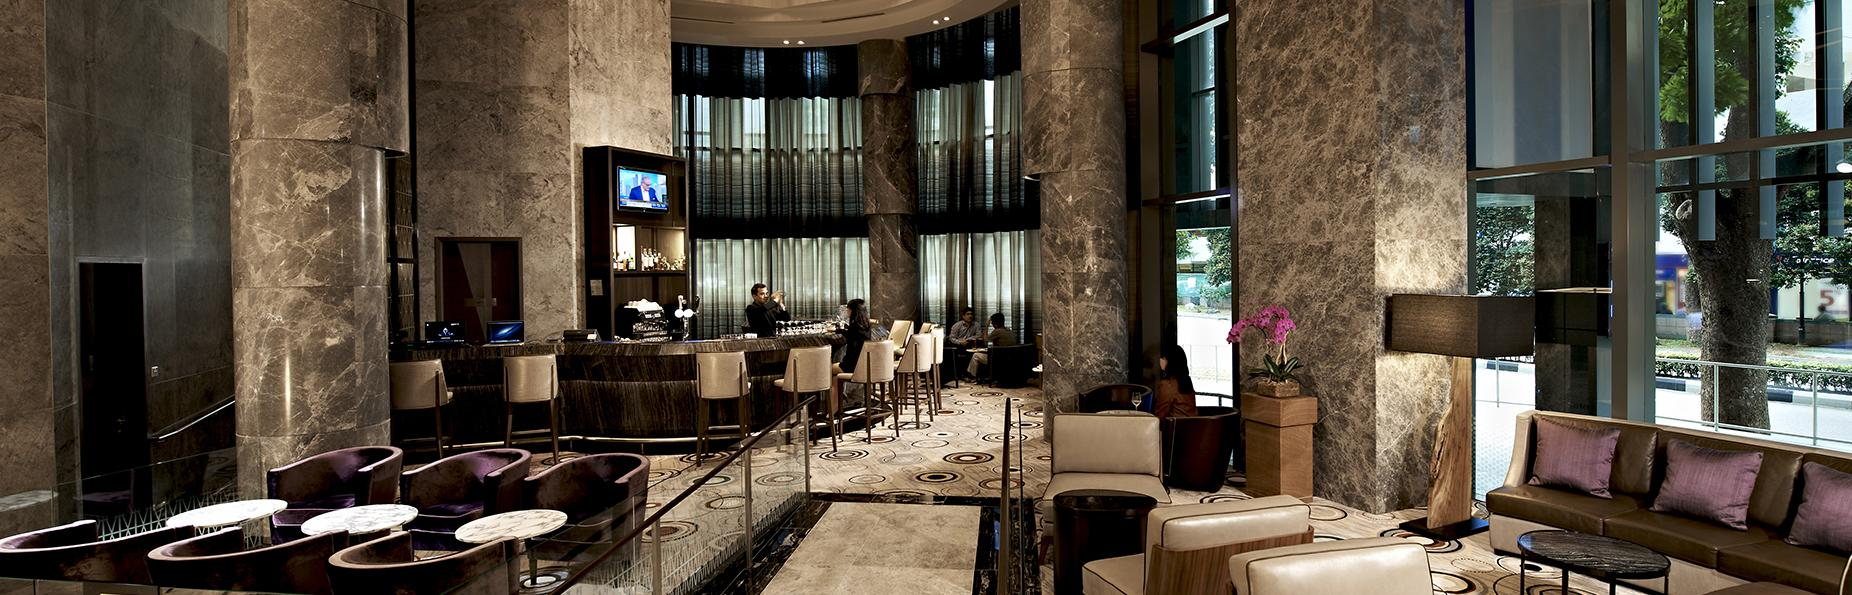 hotel lounge and bar